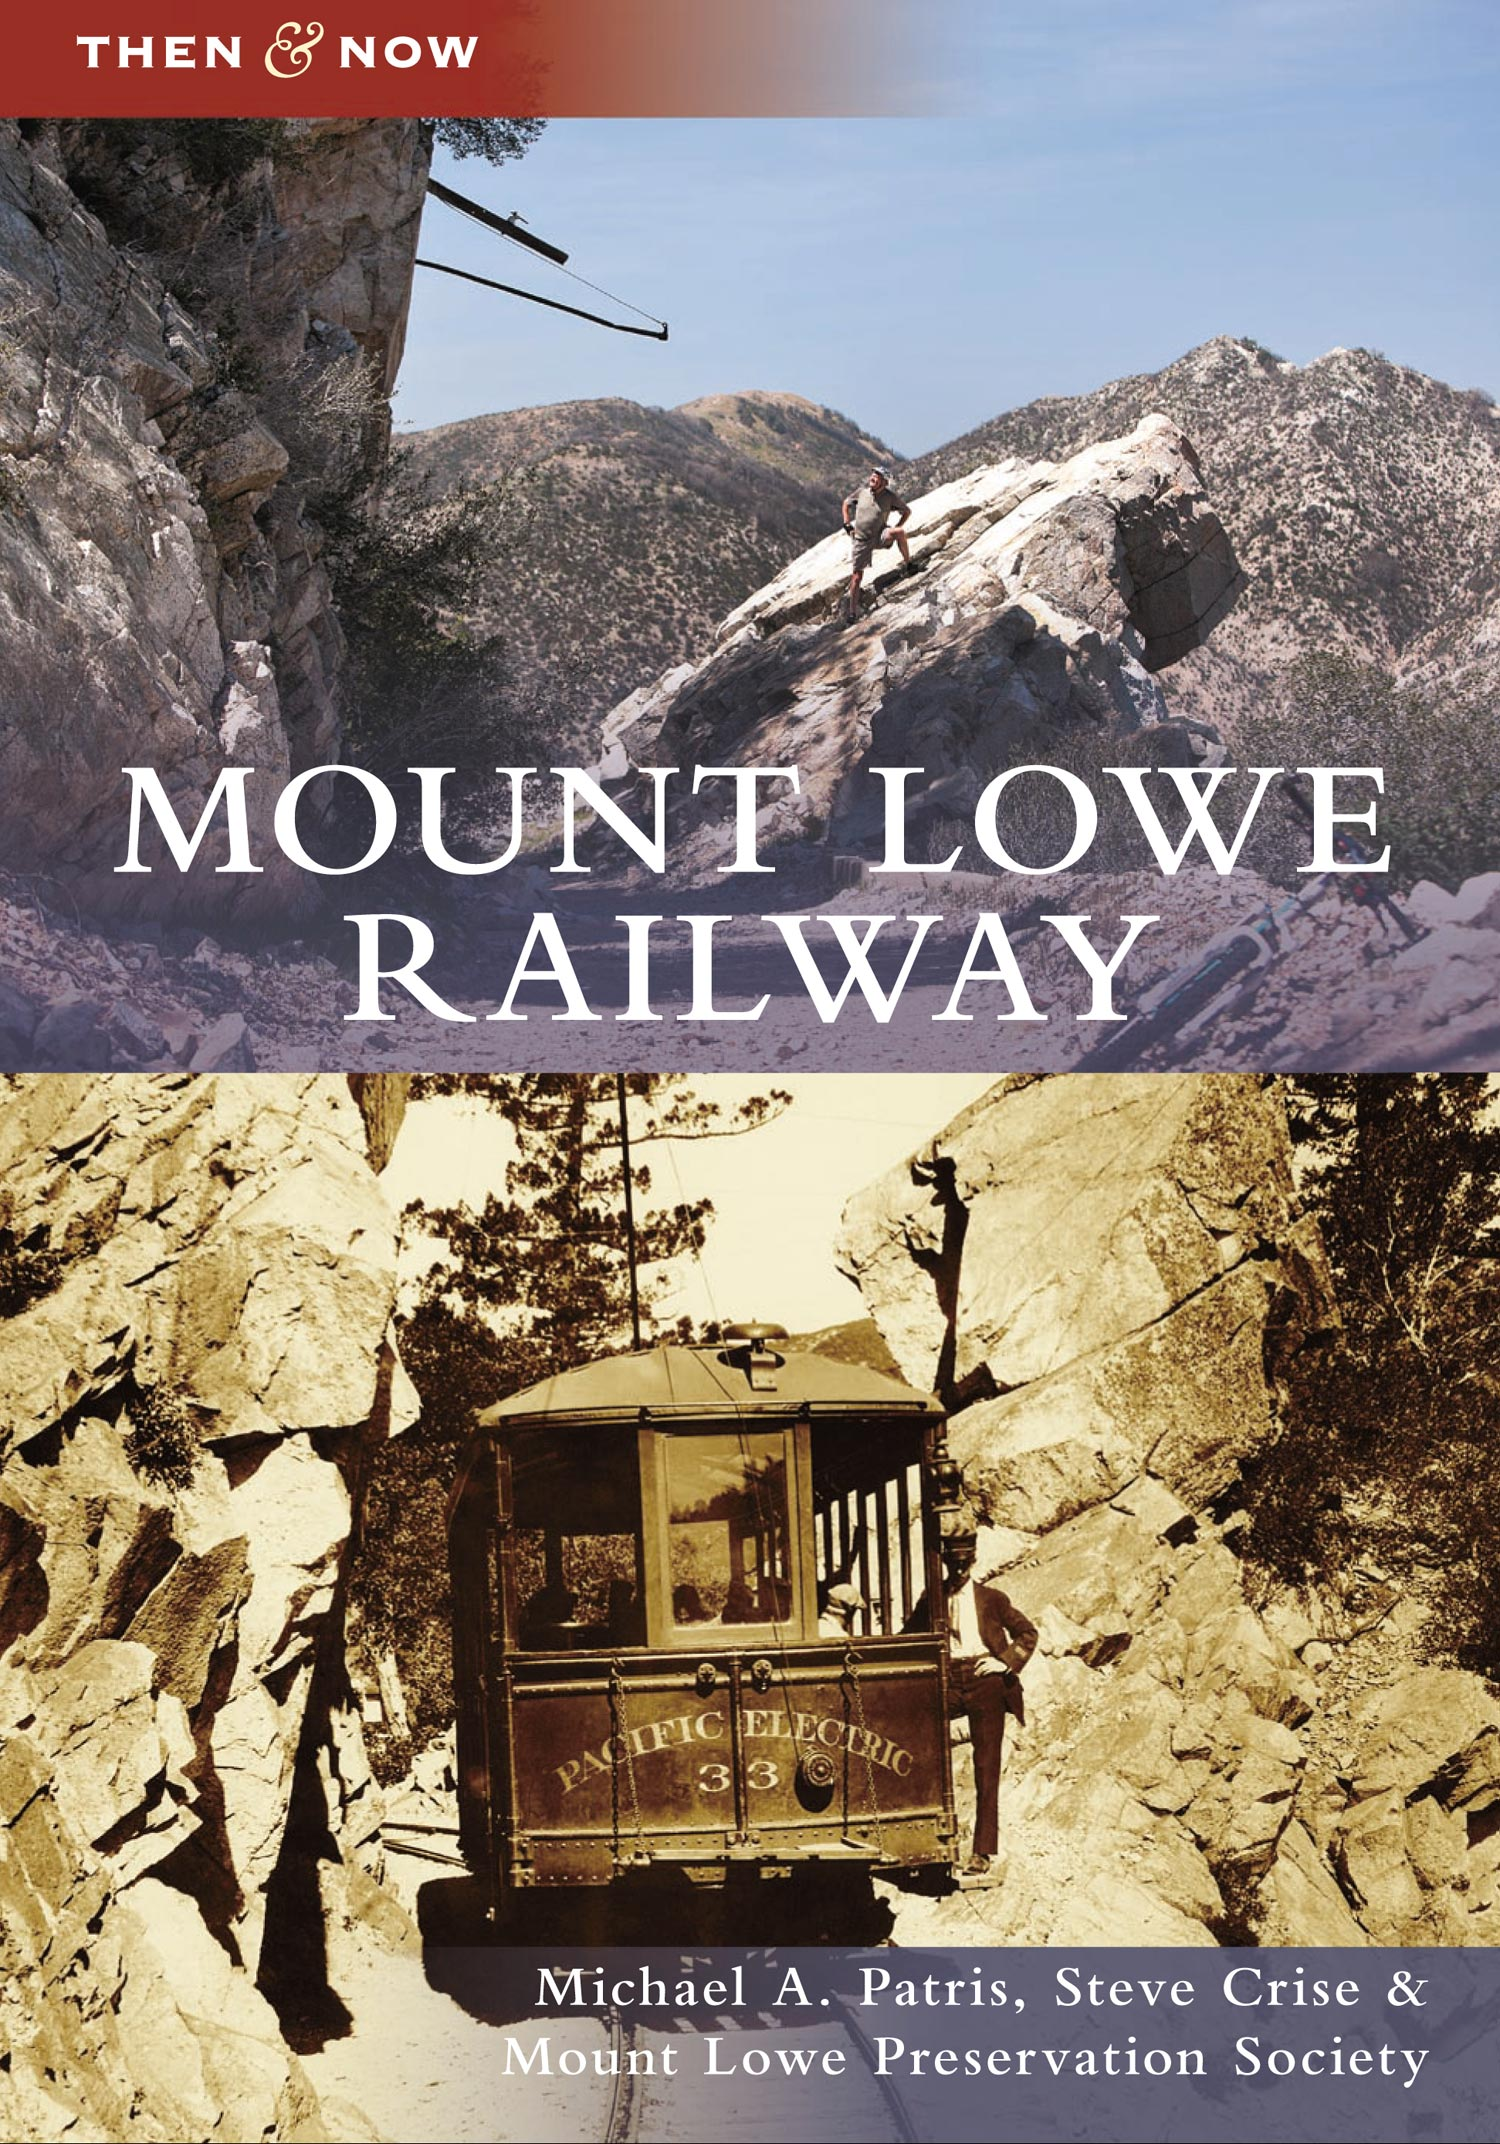 Mount Lowe Then &amp; Now, by Steve Crise and Michael Patris